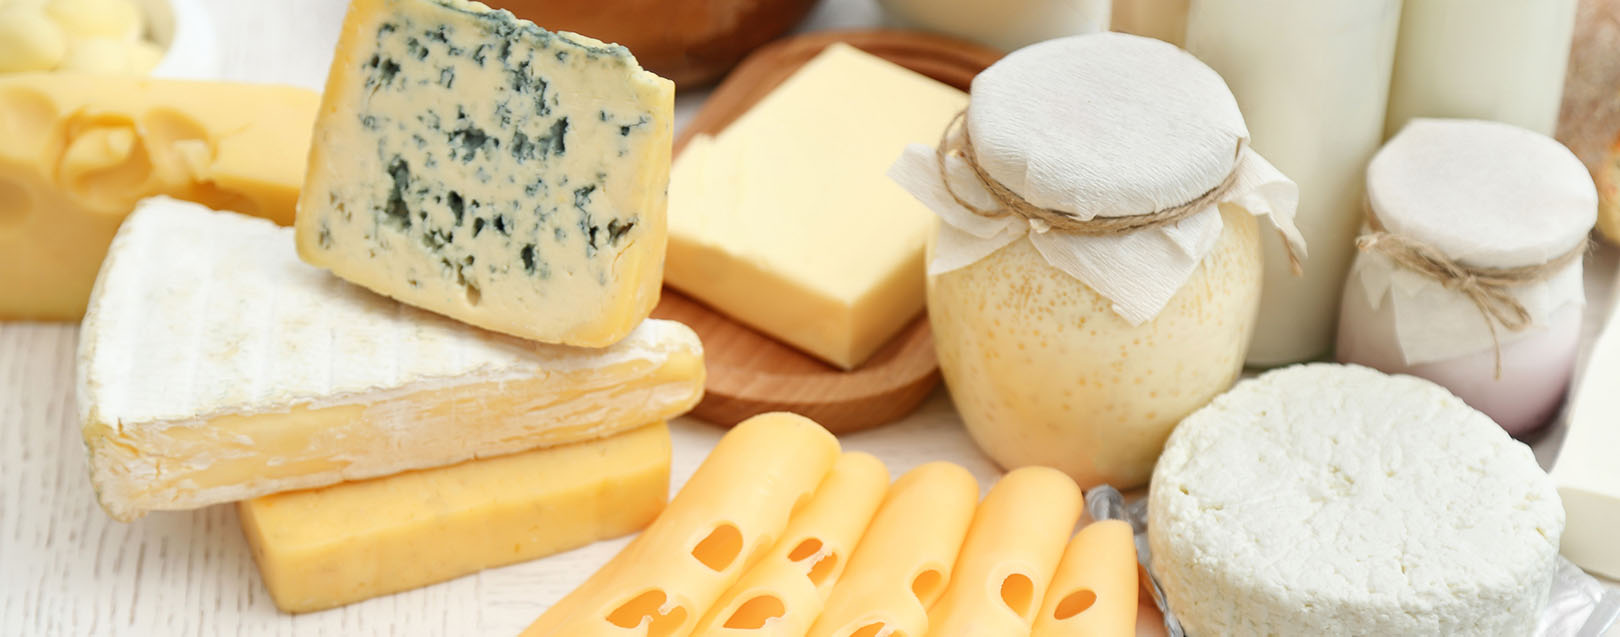 Prabhat Dairy to expand exports to Gulf region